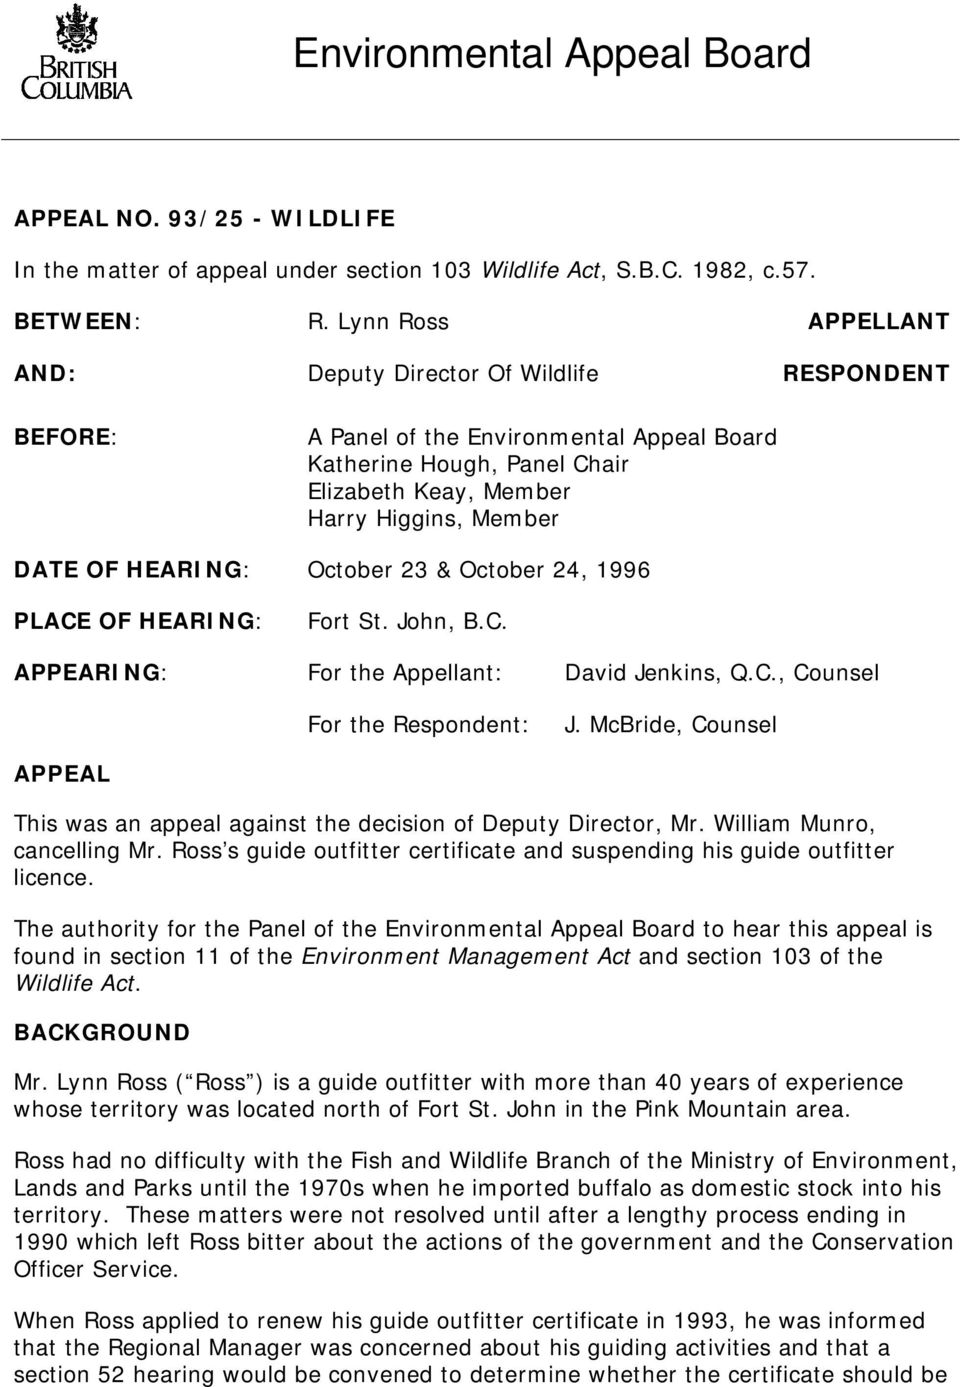 HEARING: October 23 & October 24, 1996 PLACE OF HEARING: Fort St. John, B.C. APPEARING: For the Appellant: David Jenkins, Q.C., Counsel For the Respondent: J.